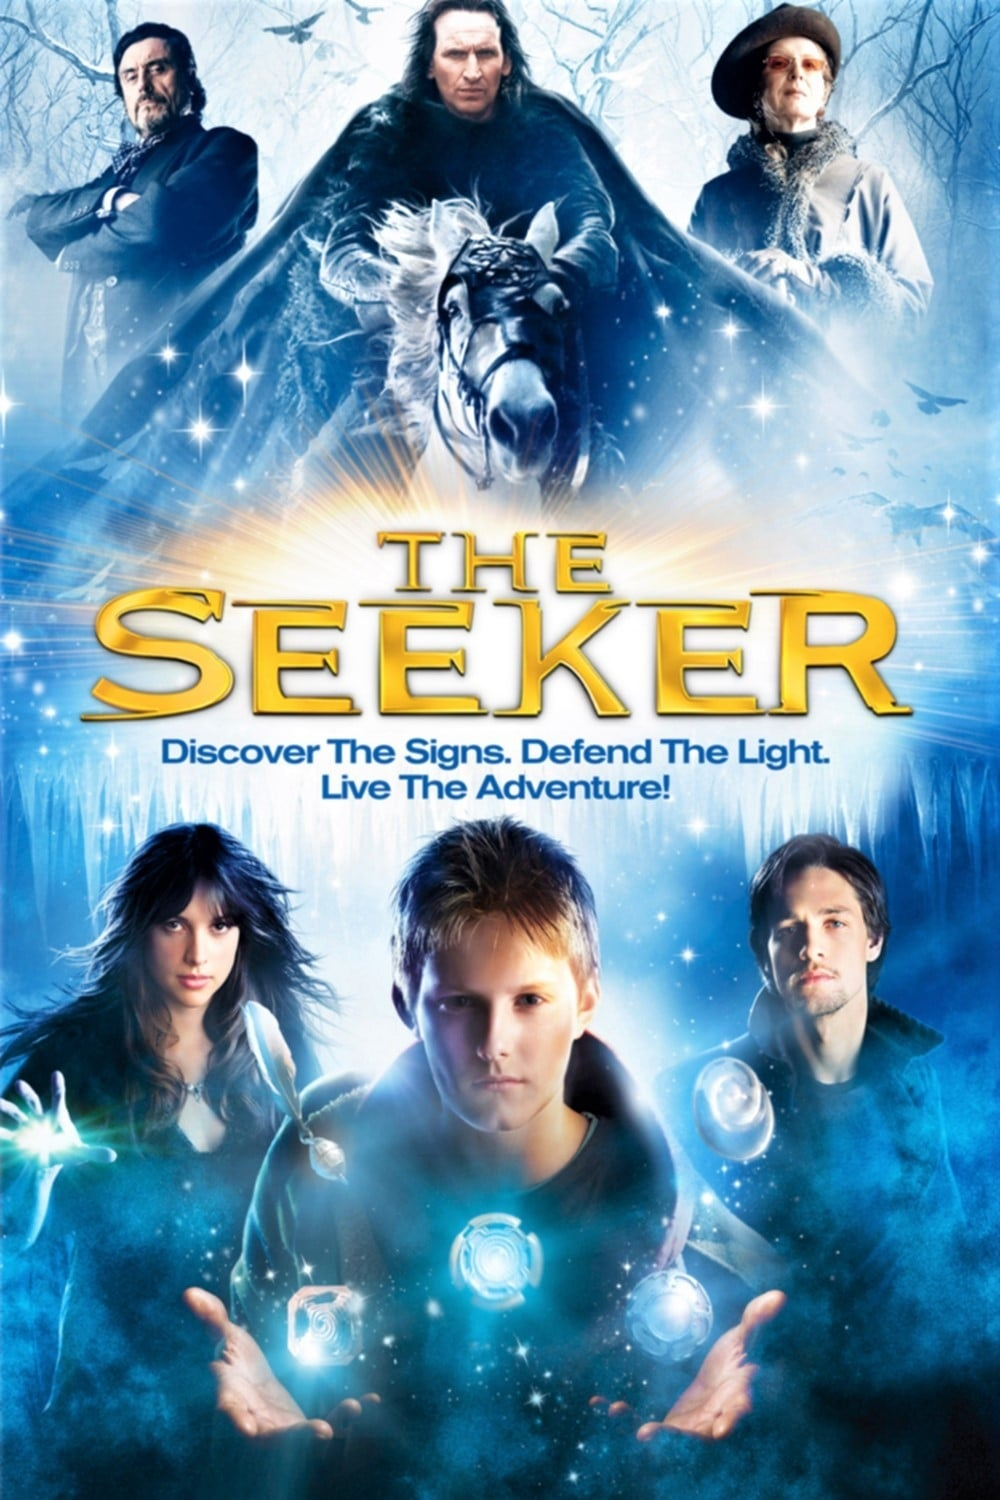 The Seeker: The Dark Is Rising